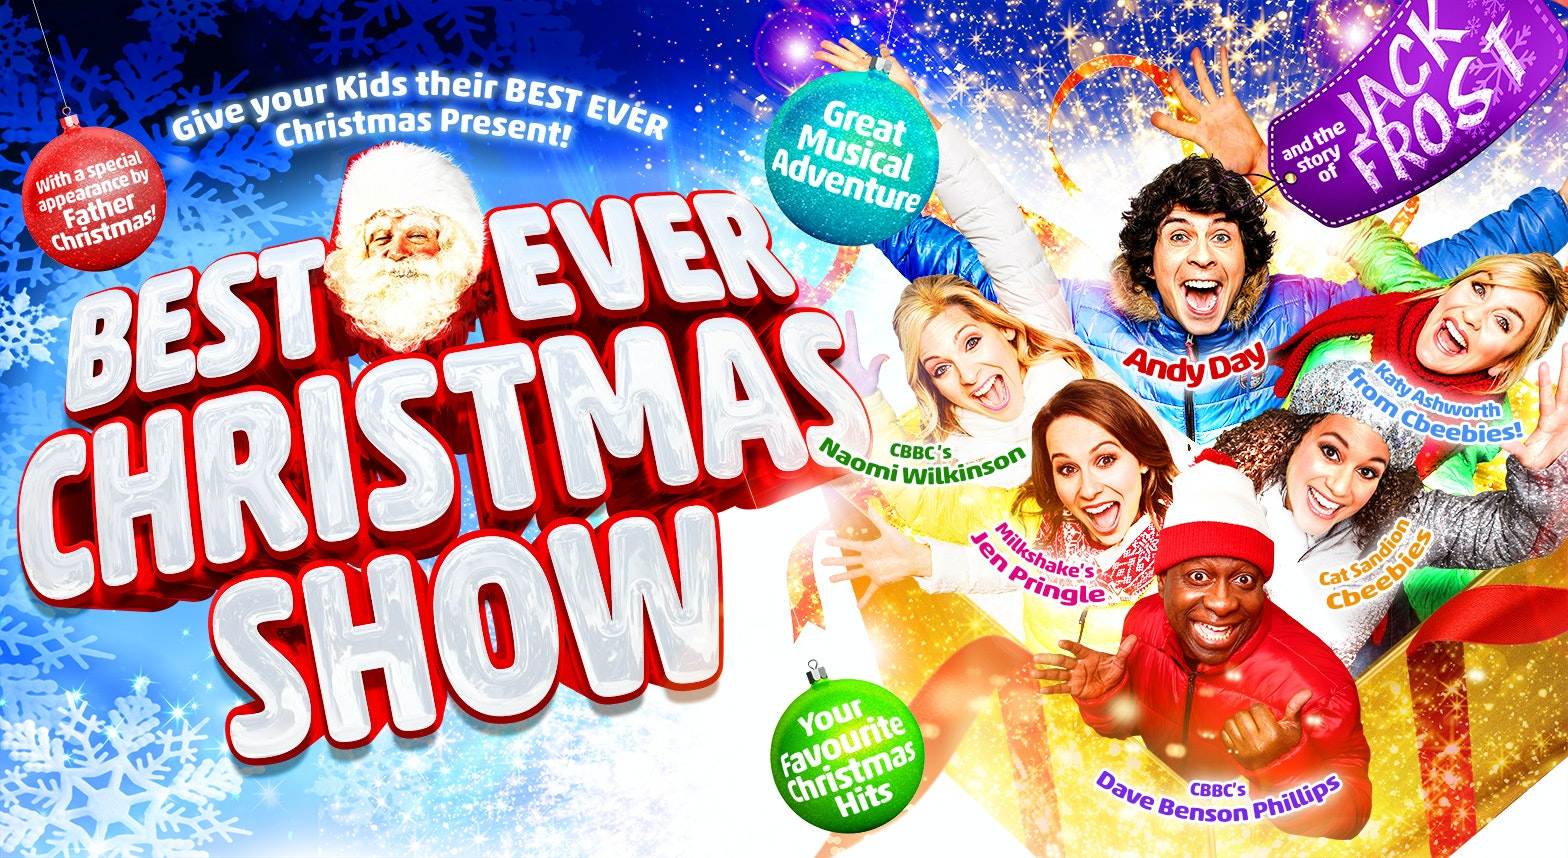 FAMILY TICKETS TO THE BEST EVER CHRISTMAS SHOW sweepstakes